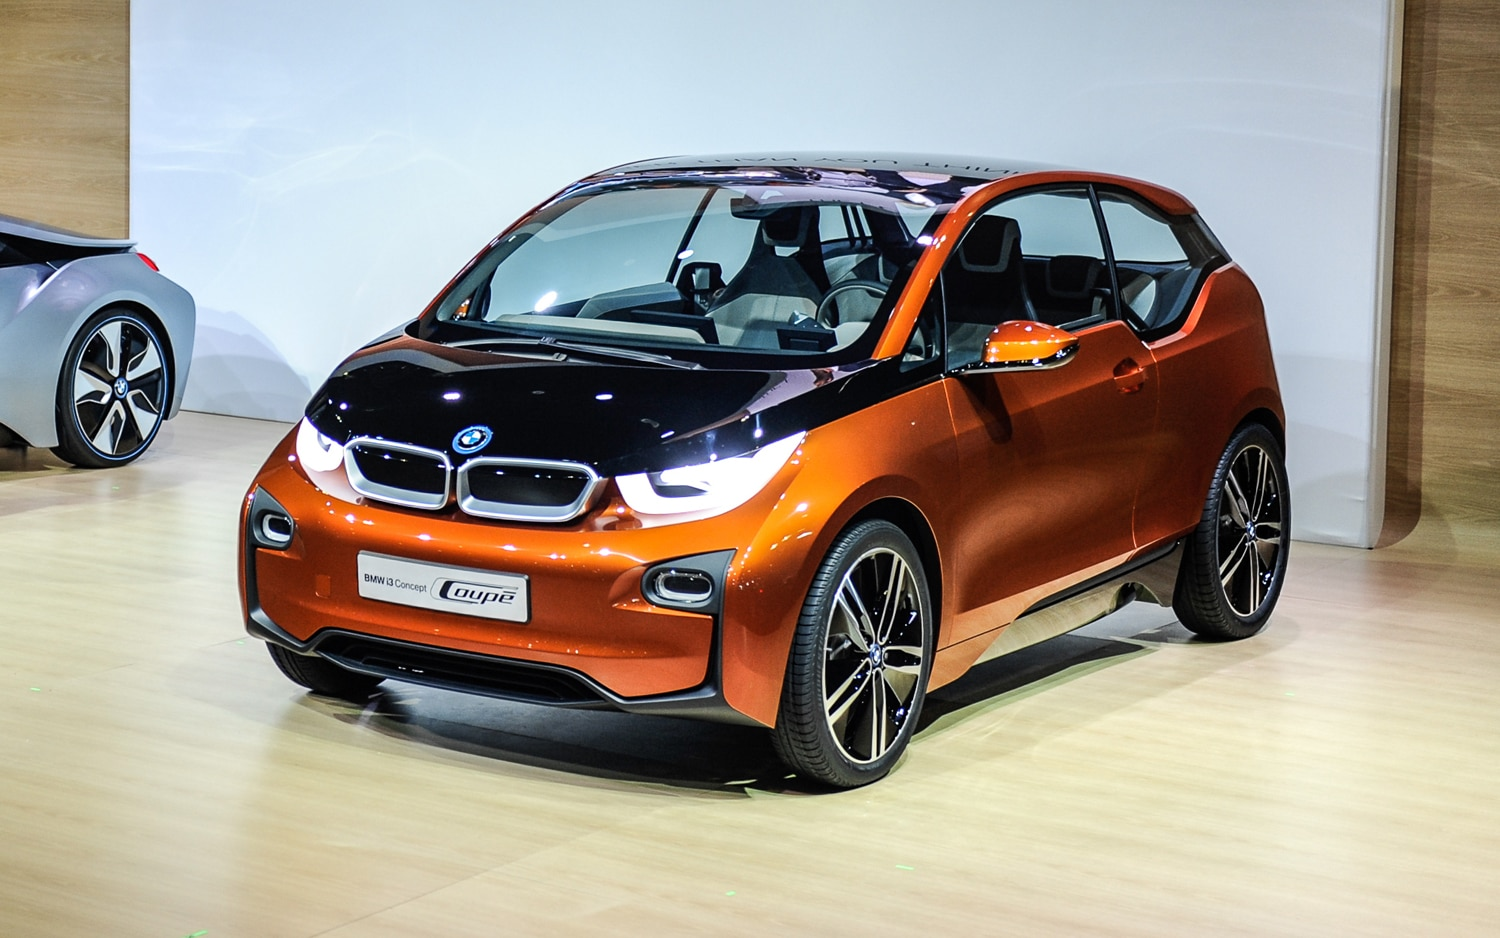 2012 los angeles bmw i3 loses two doors reborn as i3 concept coupe. Black Bedroom Furniture Sets. Home Design Ideas